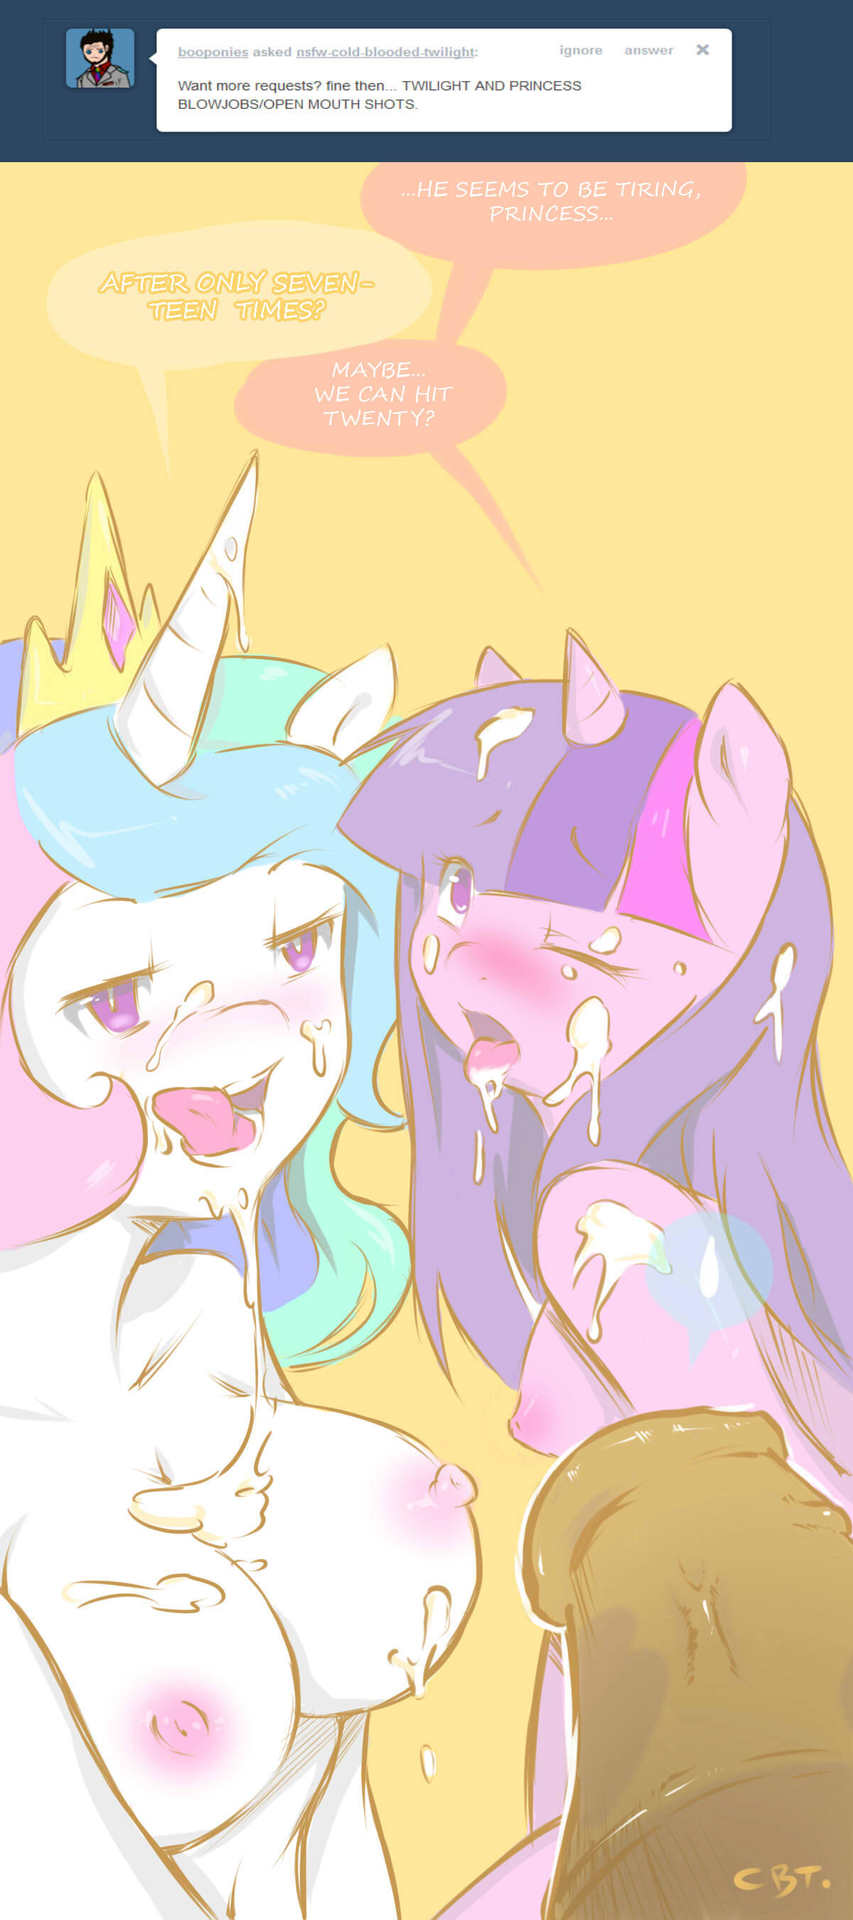 sparkle twilight sombra king x Metal gear solid 4 crying wolf